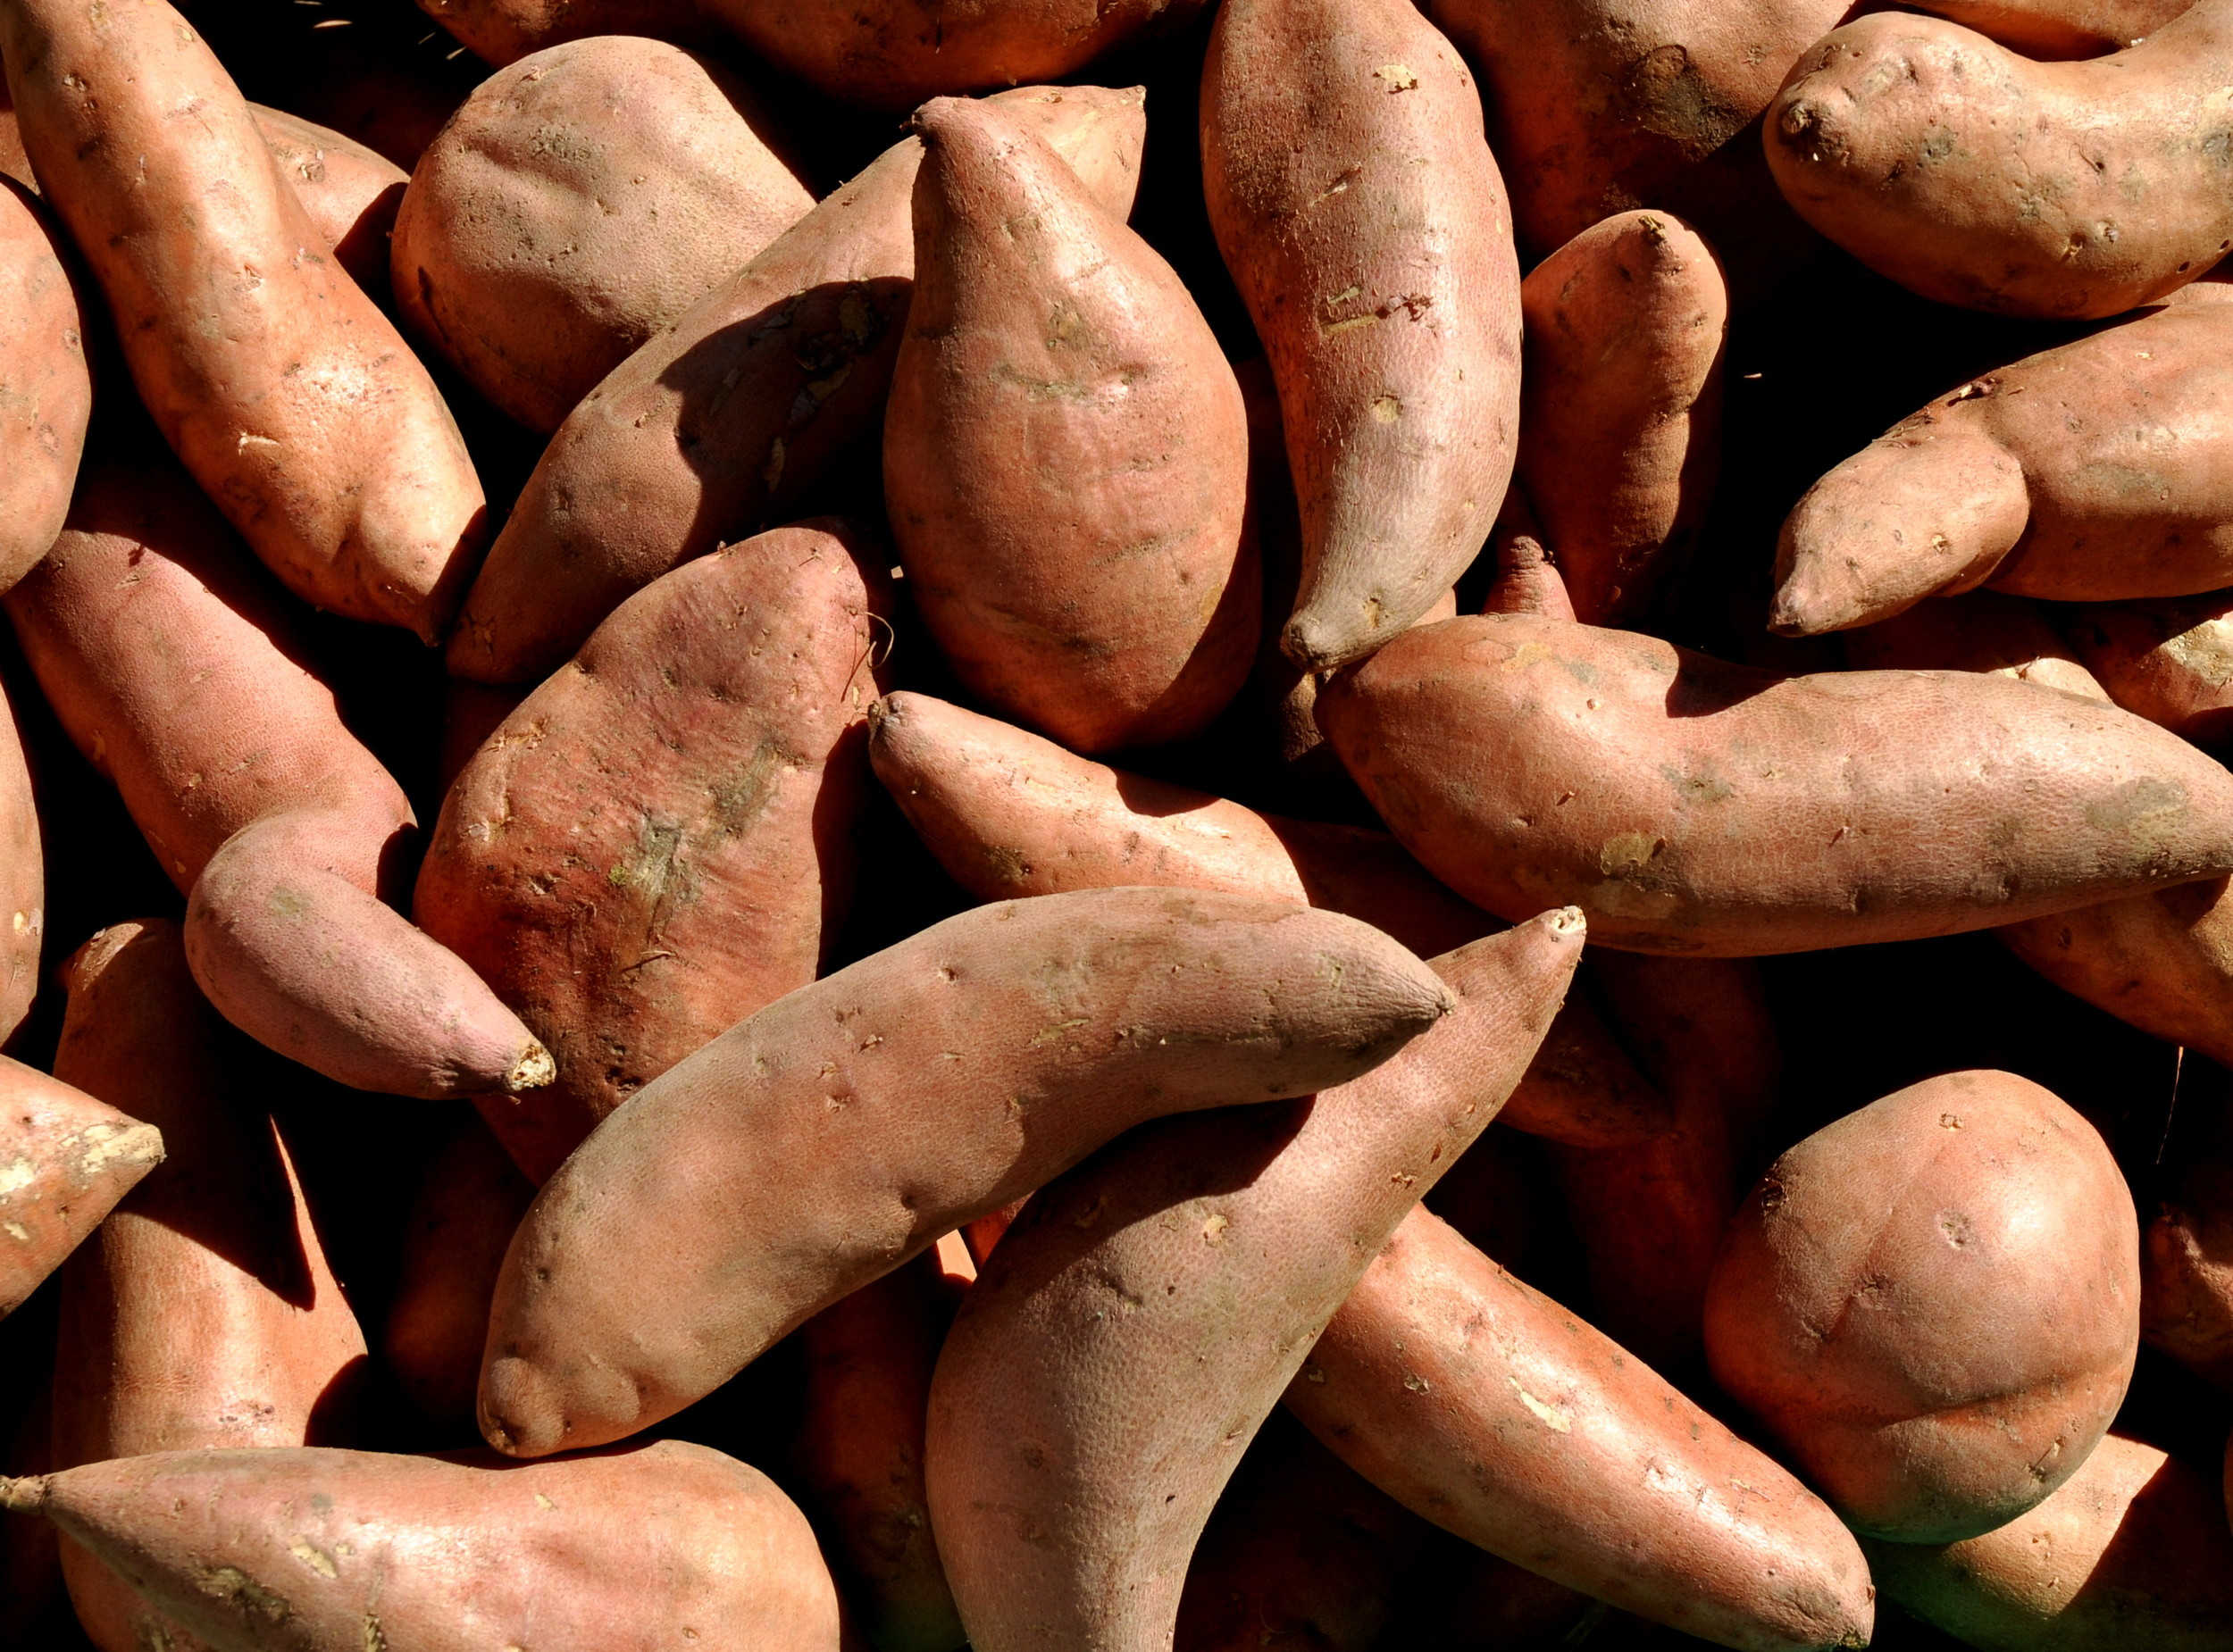 Sweet potatoes from Lyall Farms. Photo copyright 2012 by Zachary D. Lyons.